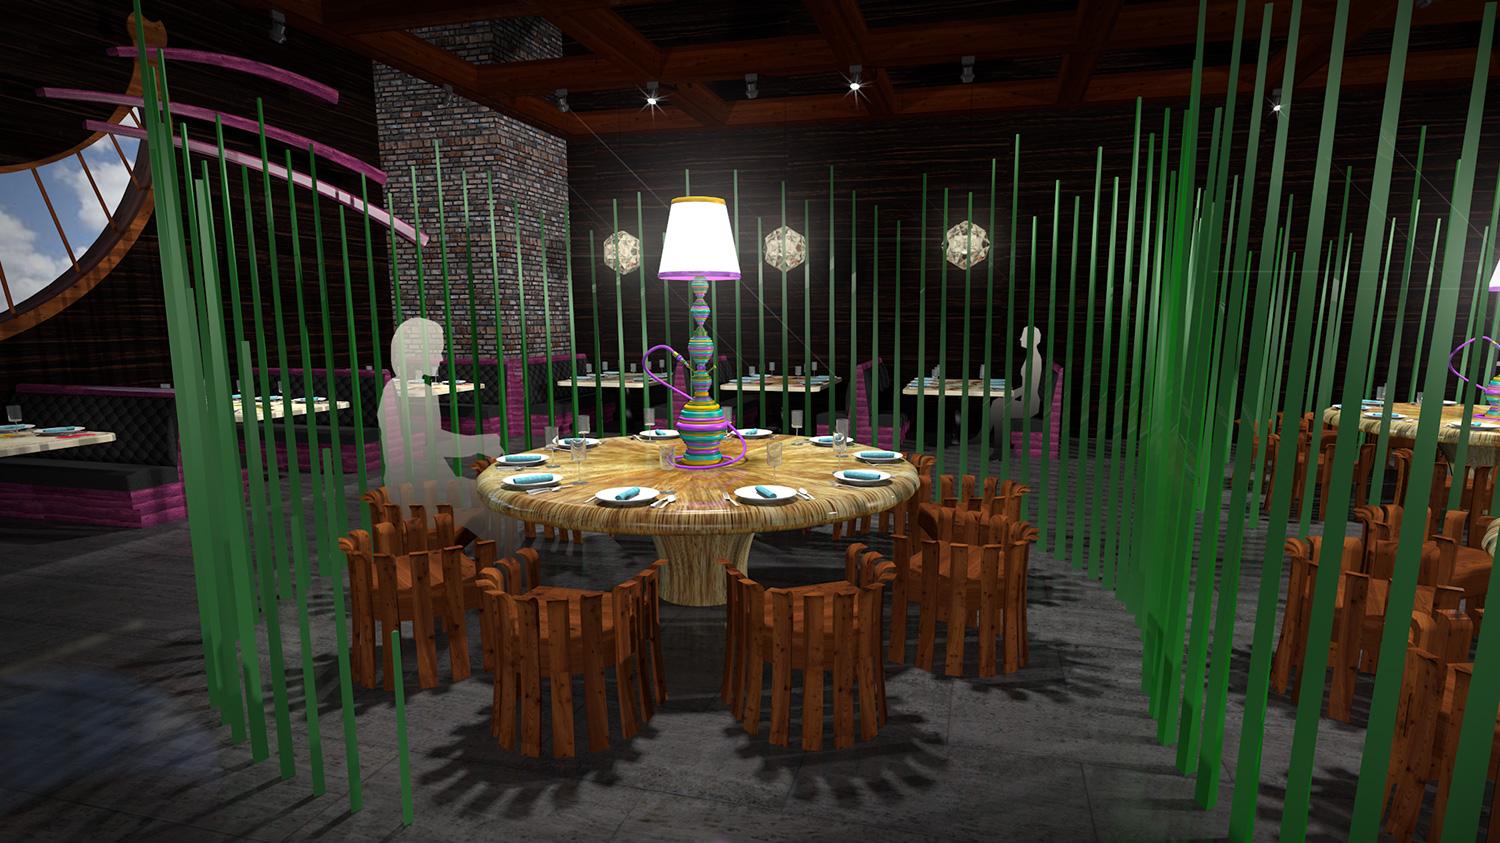 andy-broomell-mirabili-themed-restaurant-design-vectorworks-photoshop-3d-model-rendering-34.png